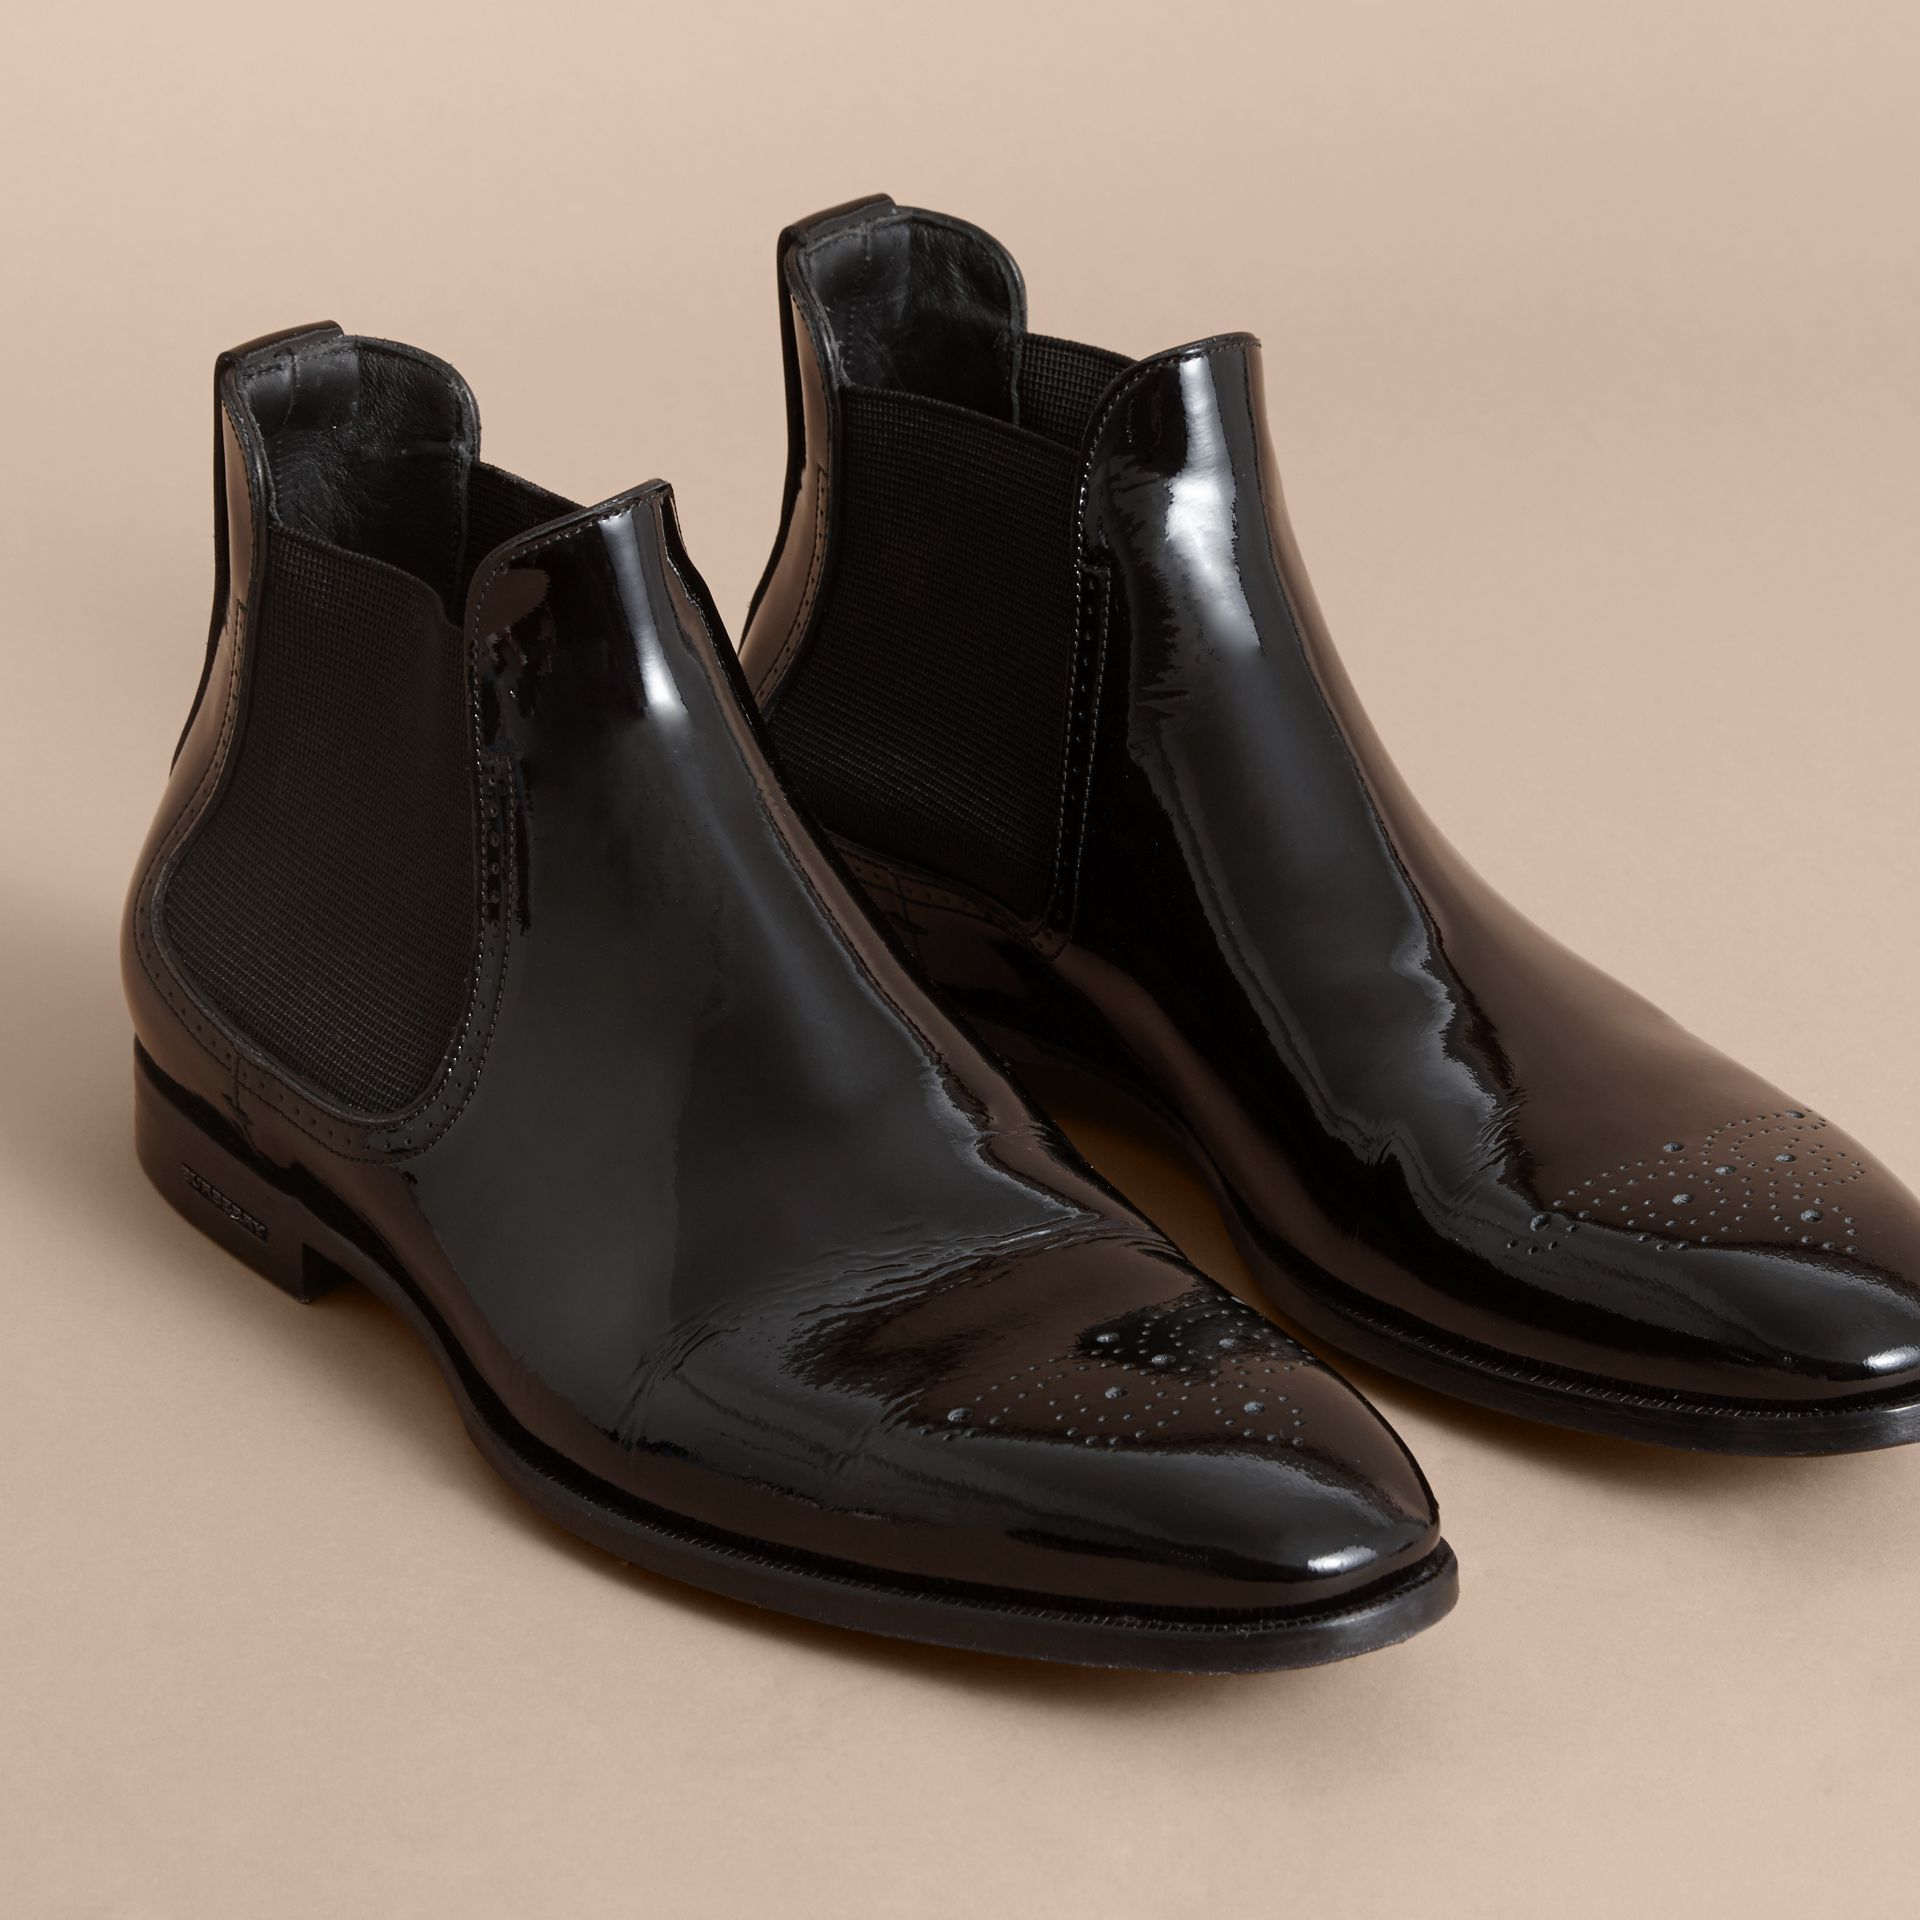 Polished Leather Chelsea Boots in Black - Men | Burberry Canada - gallery image 4